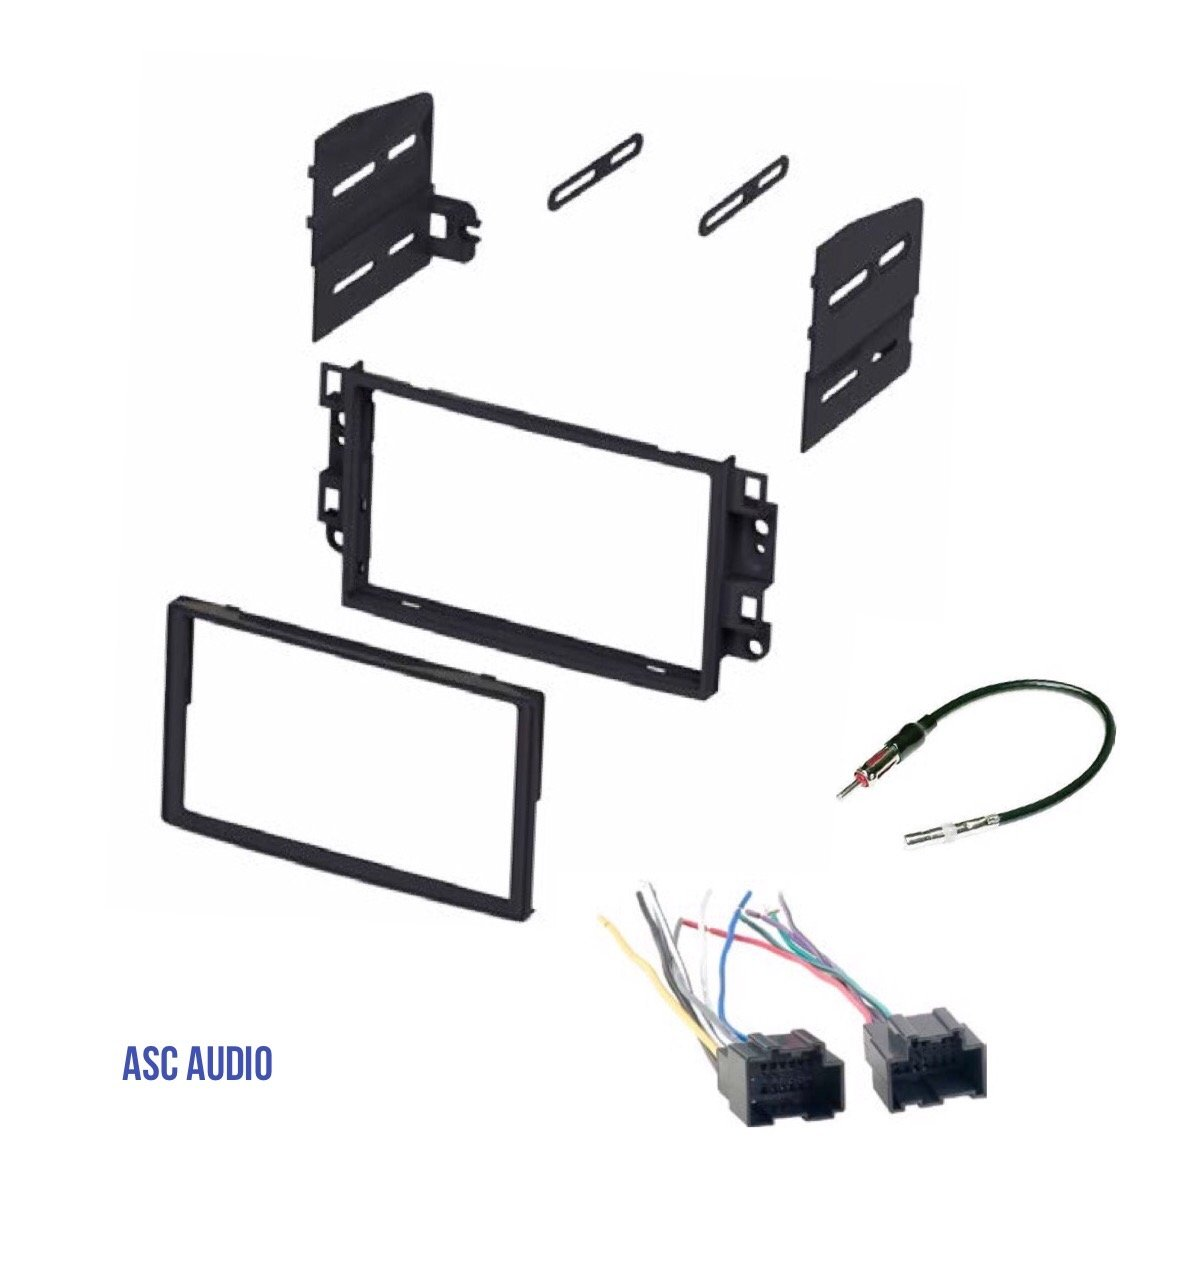 Cheap Radio Wire Harness Connectors Find Car Audio Installation Diagram How Do I Install A Stereo Get Quotations Asc Double Din Dash Kit Antenna Adapter To